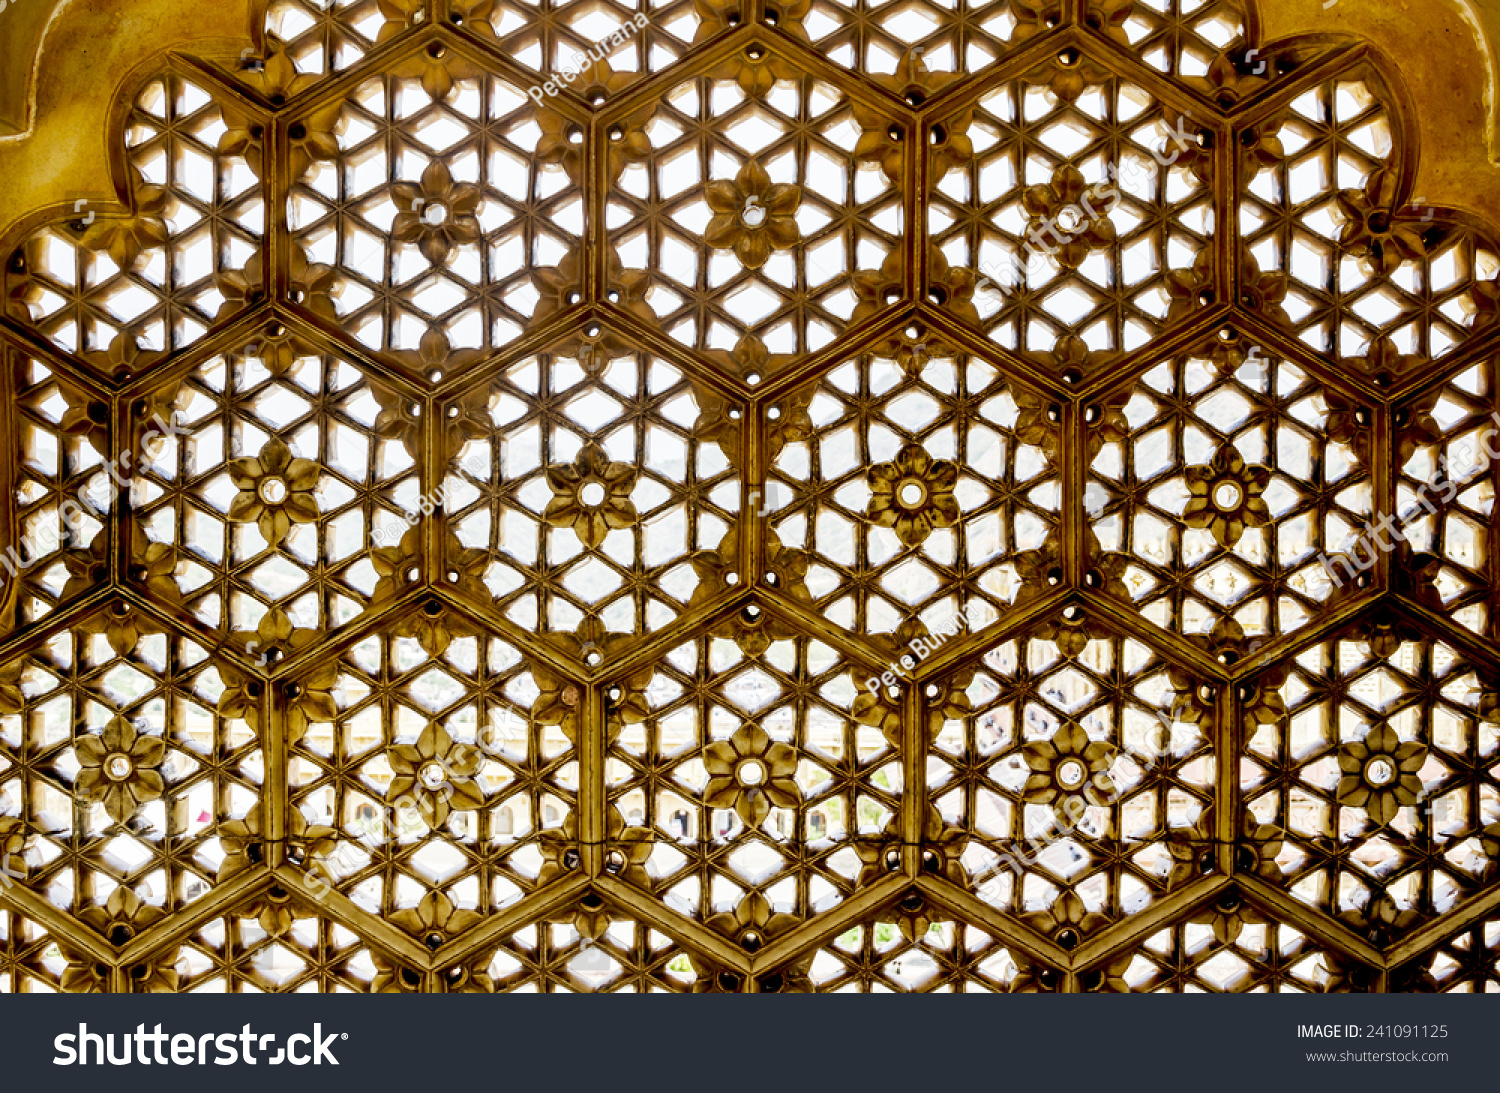 marble lattice window carved abstract design stock photo edit now